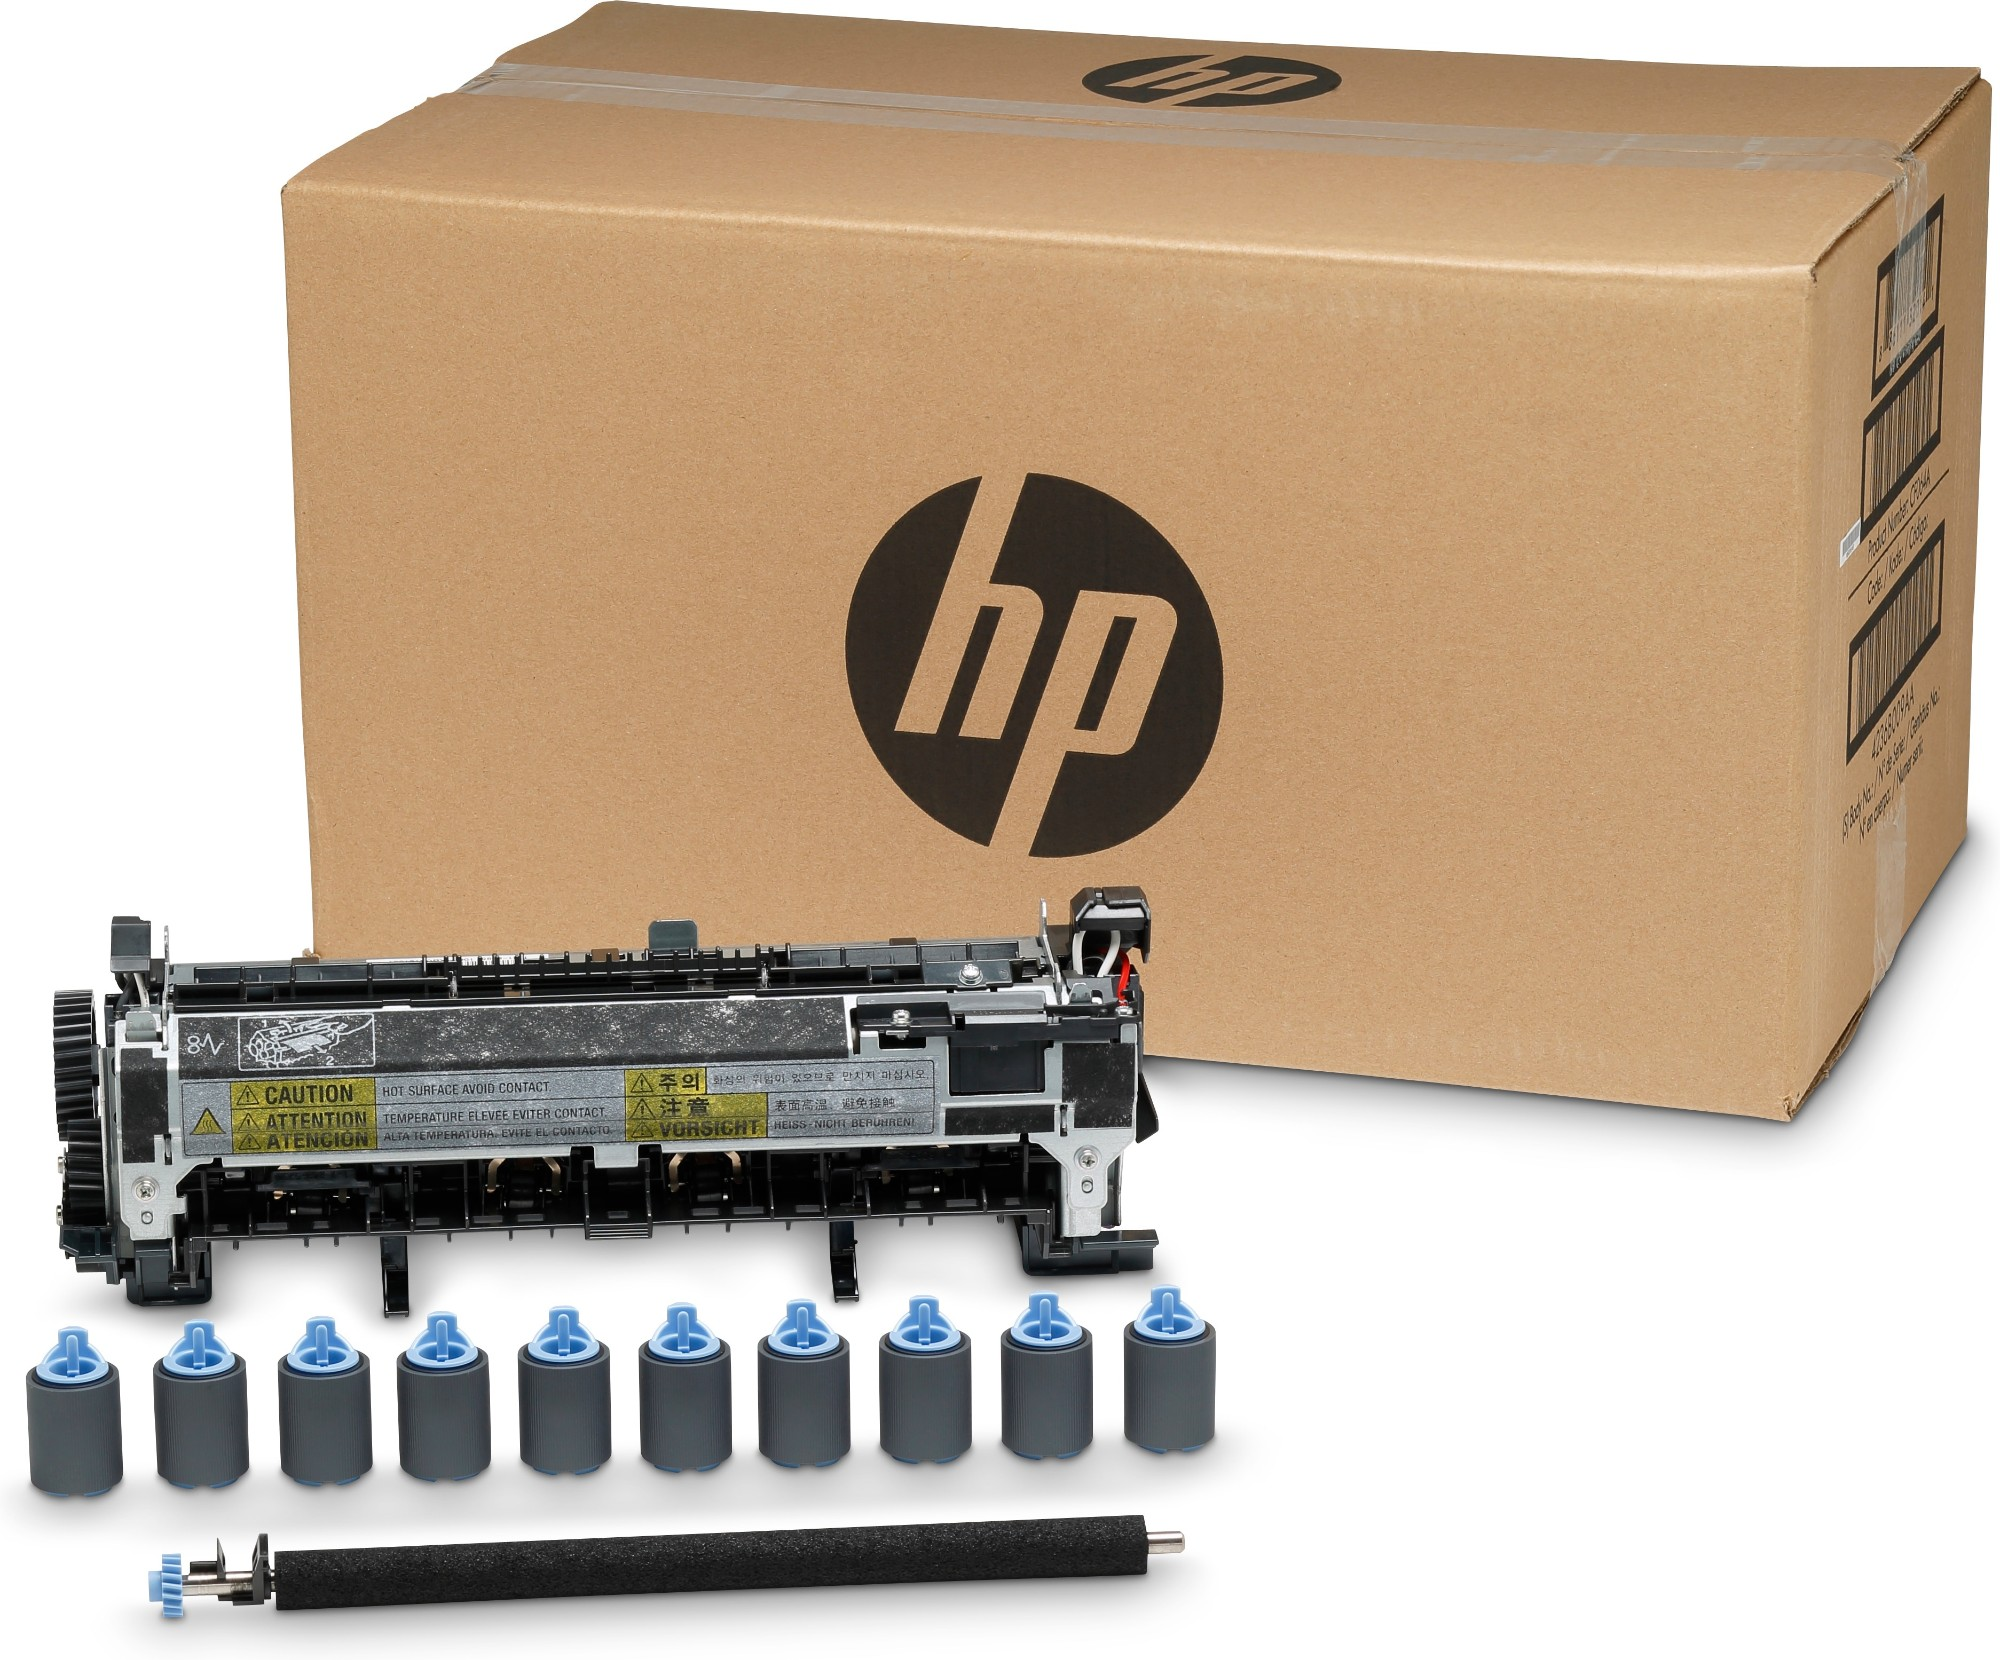 HP CF065A Service-Kit, 225K pages